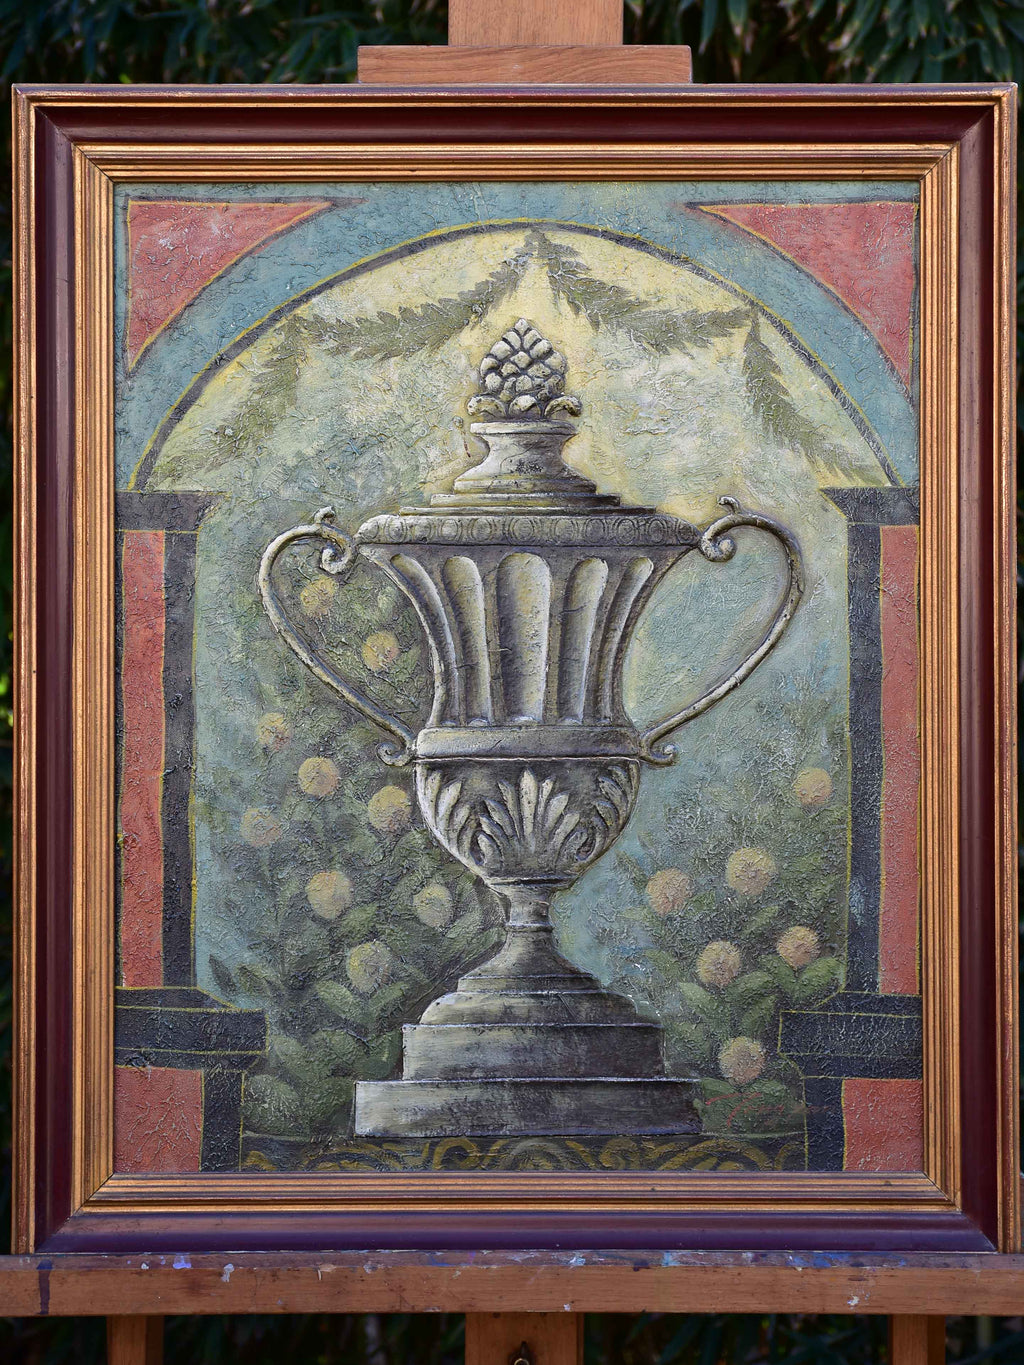 Decorative French painting of a garden urn